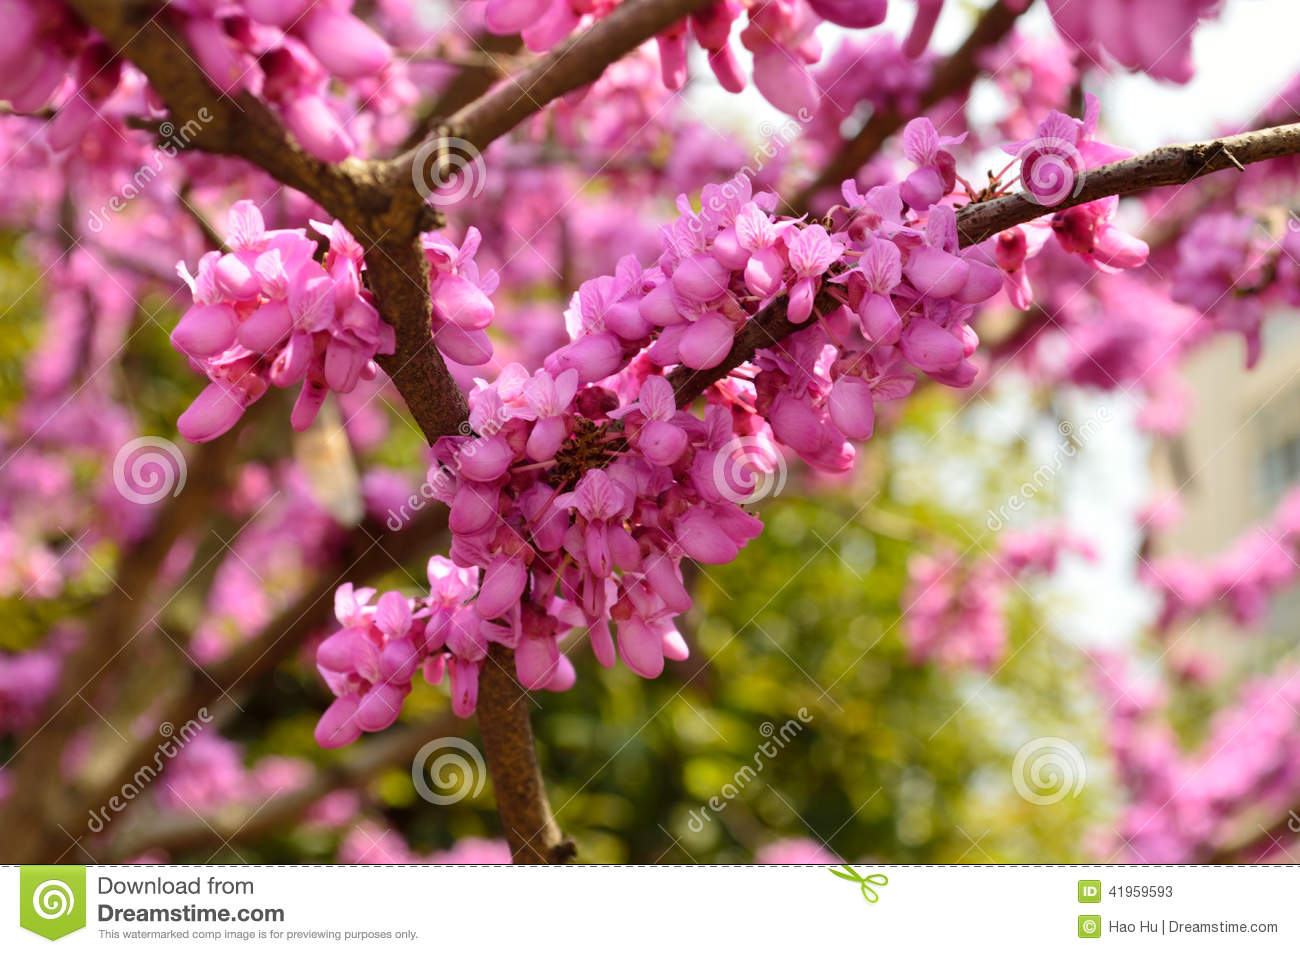 A Tree Full Of Flowers In Full Bloom In The Spring Stock Image